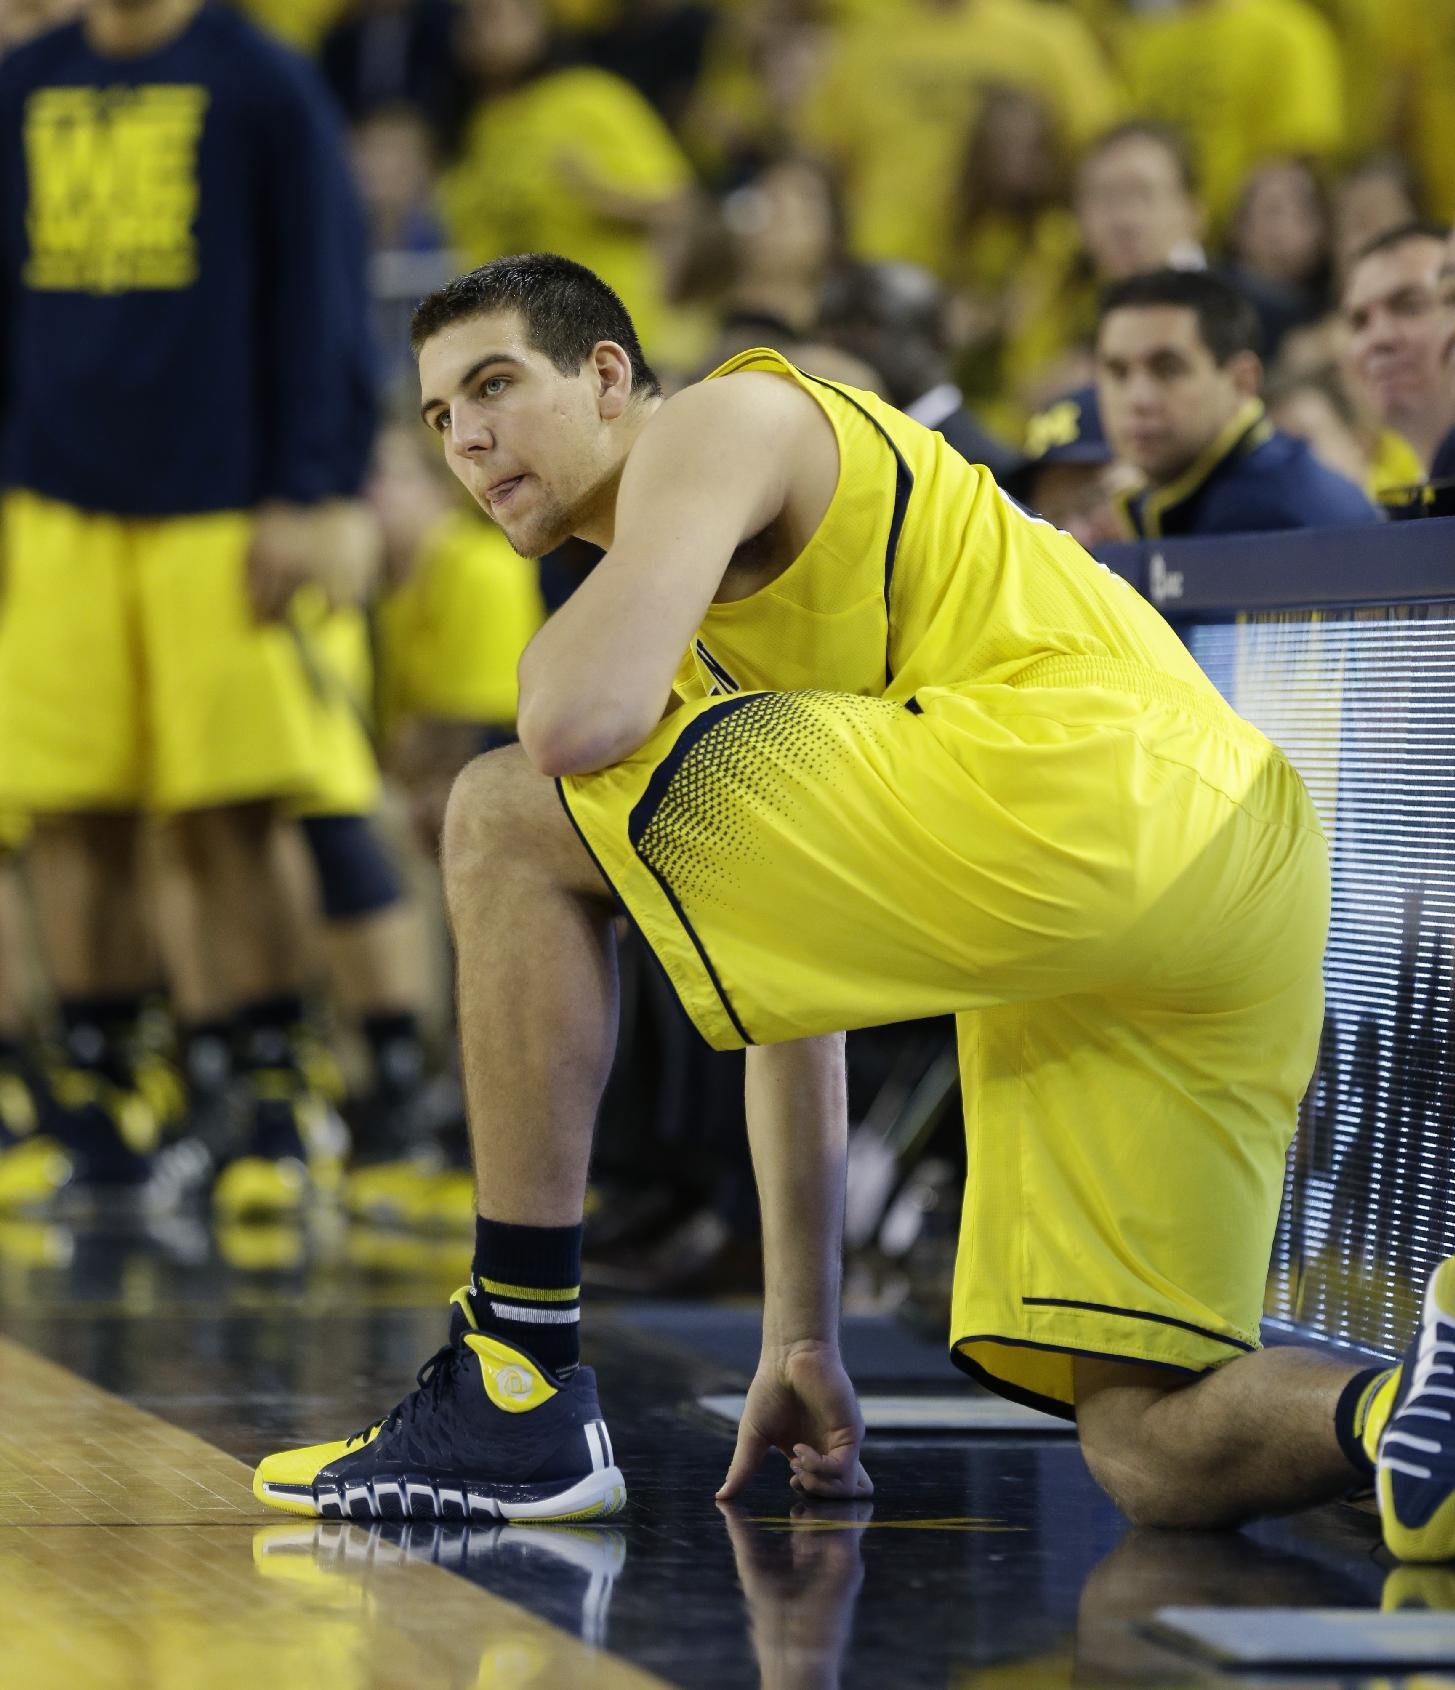 Michigan forward Mitch McGary (4) waits to enter the game during the second half of an NCAA college basketball game against Arizona in Ann Arbor, Mich., Saturday, Dec. 14, 2013